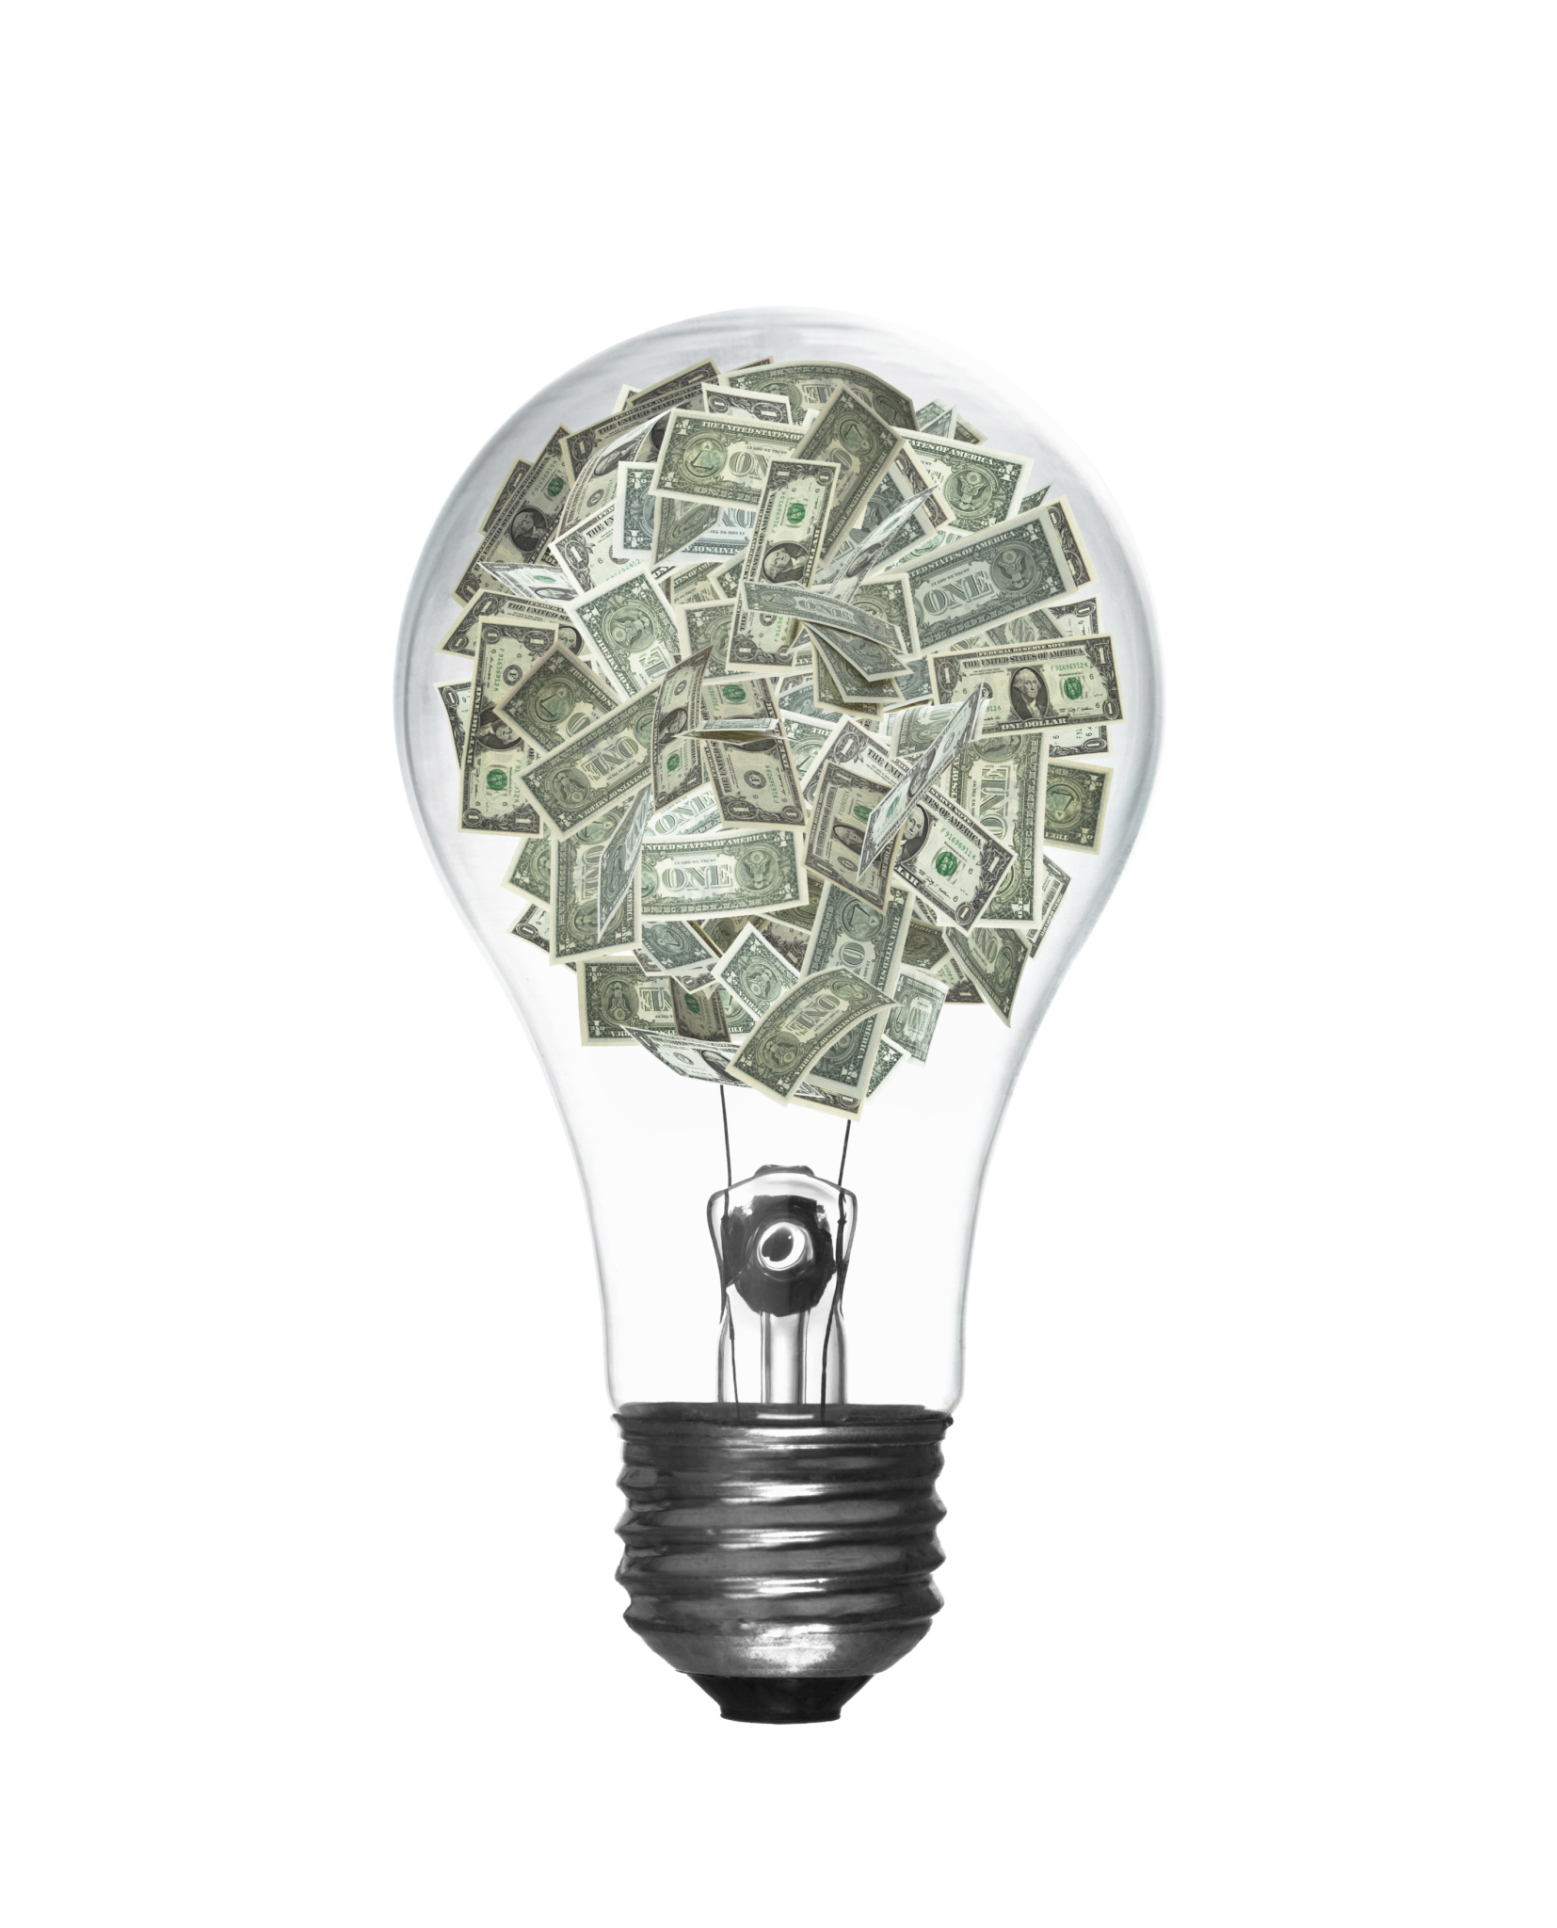 Lightbulb-Money-Incentive.jpg